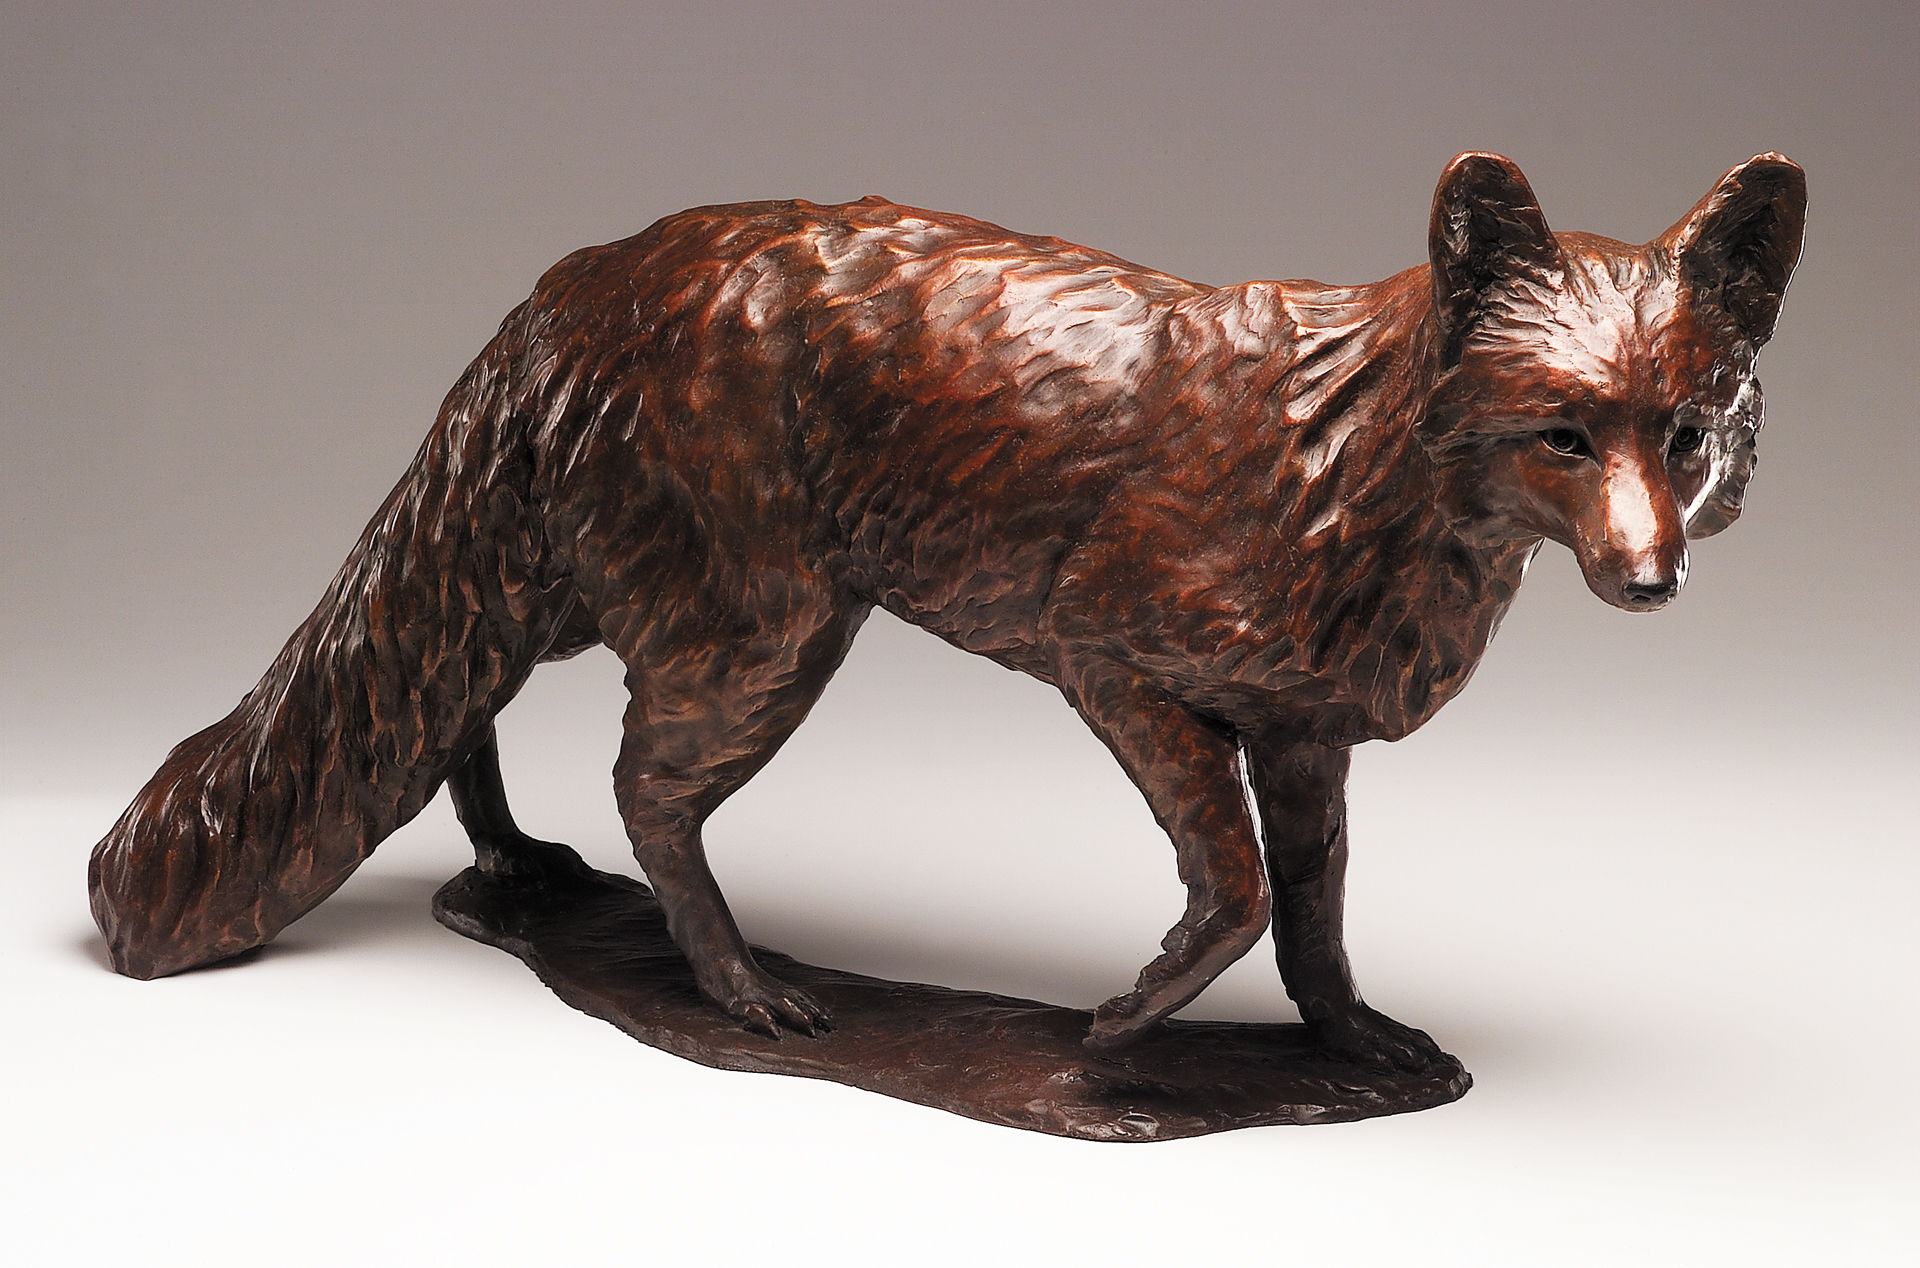 Bronze sculpture from Carrie Quade, Santa Fe, New Mexico